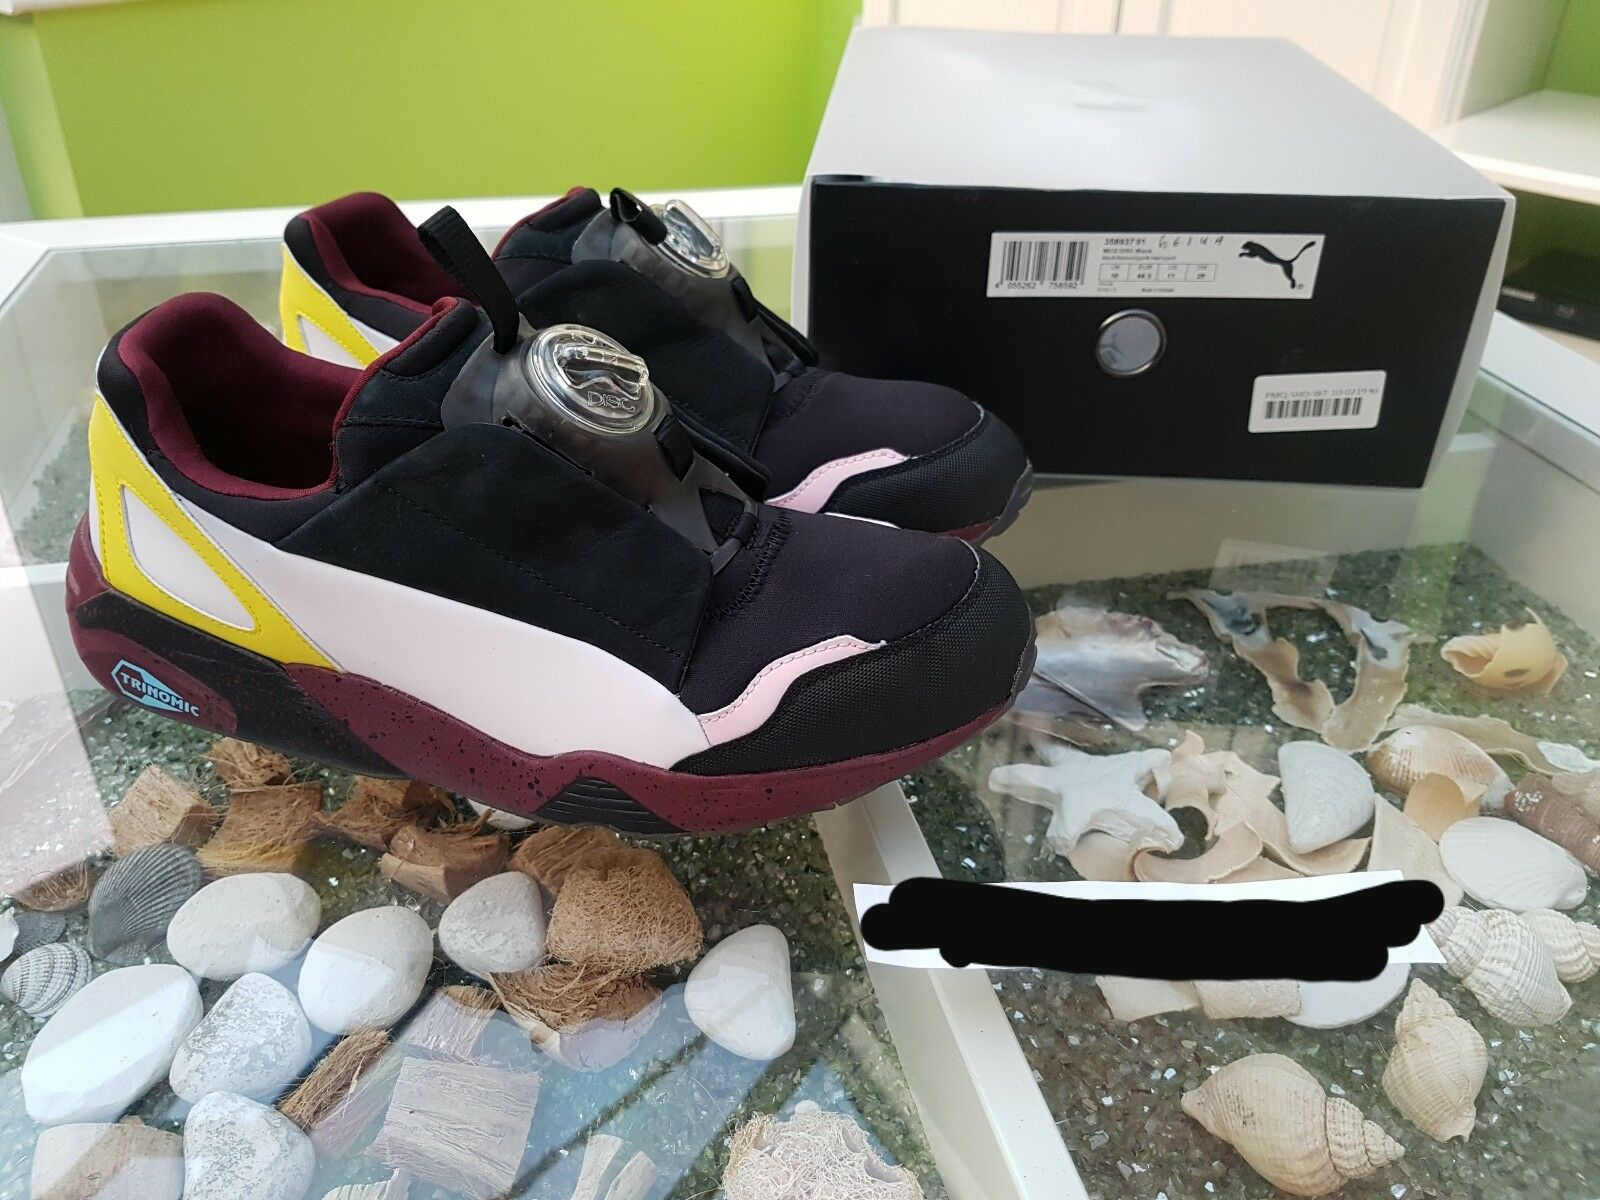 Alexander McQueen X Puma Disc Trainers Uk10 Us11 Eu44.5